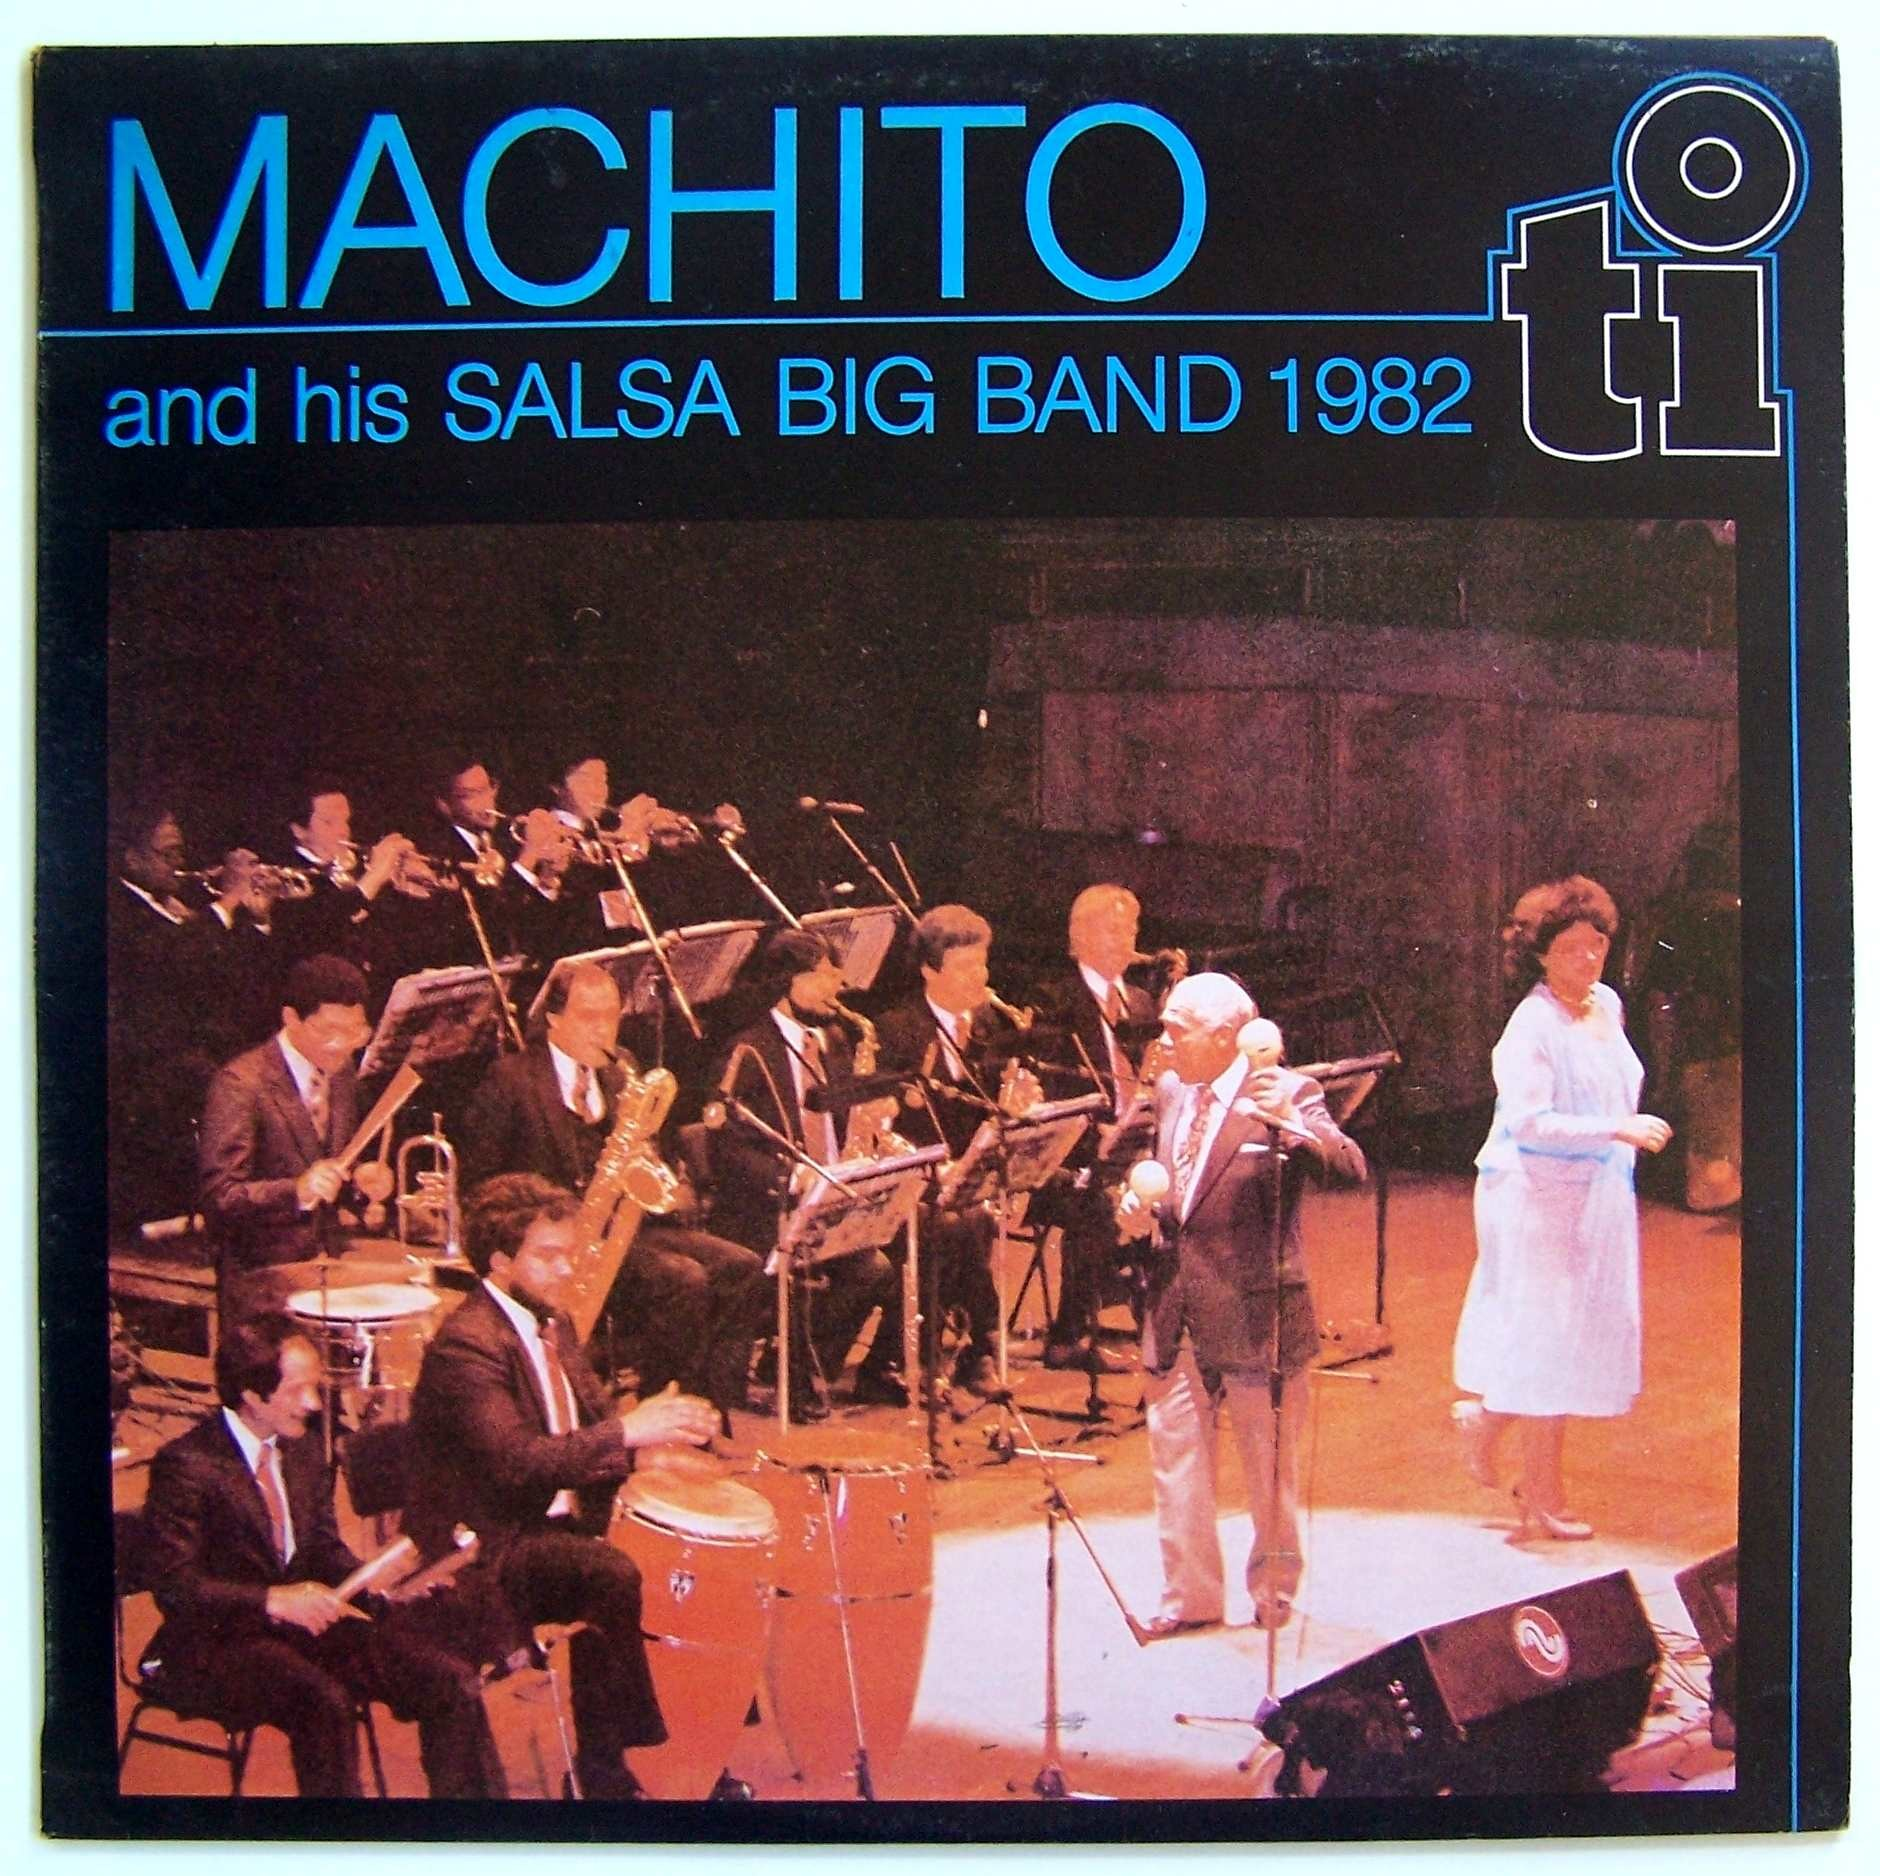 Machito His Salsa Big Band 1982 - Machito His Salsa Big Band 1982